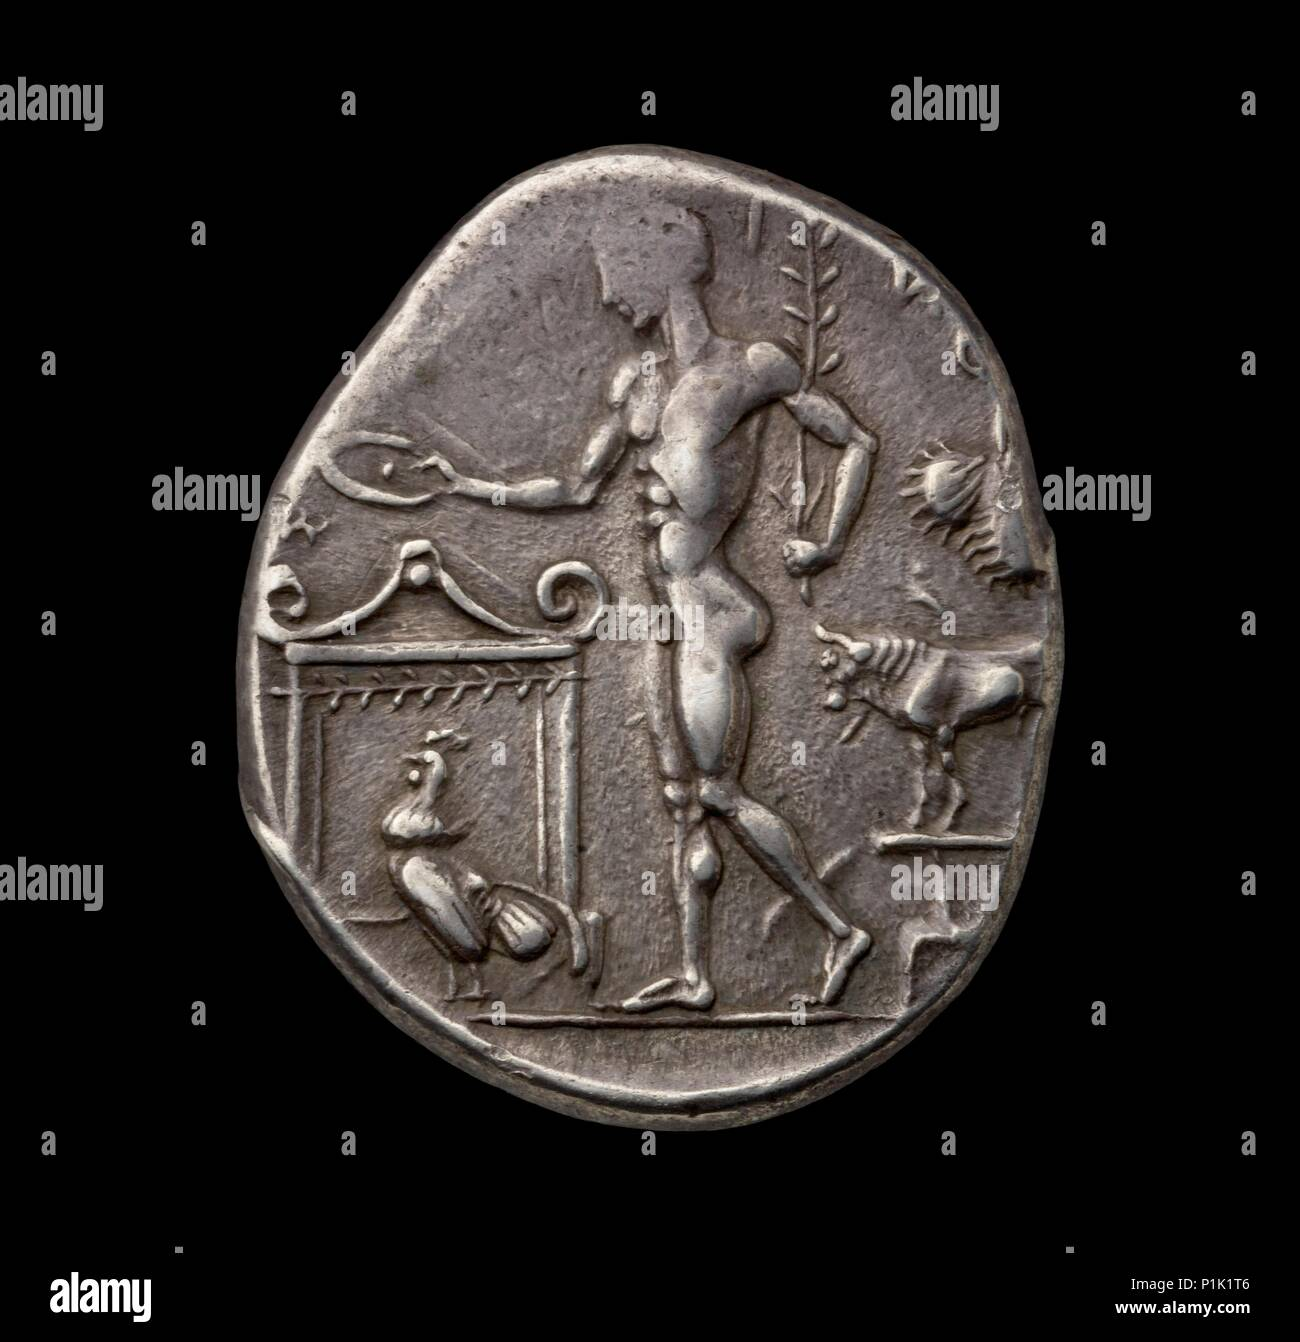 Ancient Greek silver coin, 450 BC.  Dimension: diameter: 31 mmweight: 17.27 gdie-axis: 8 o'clock - Stock Image